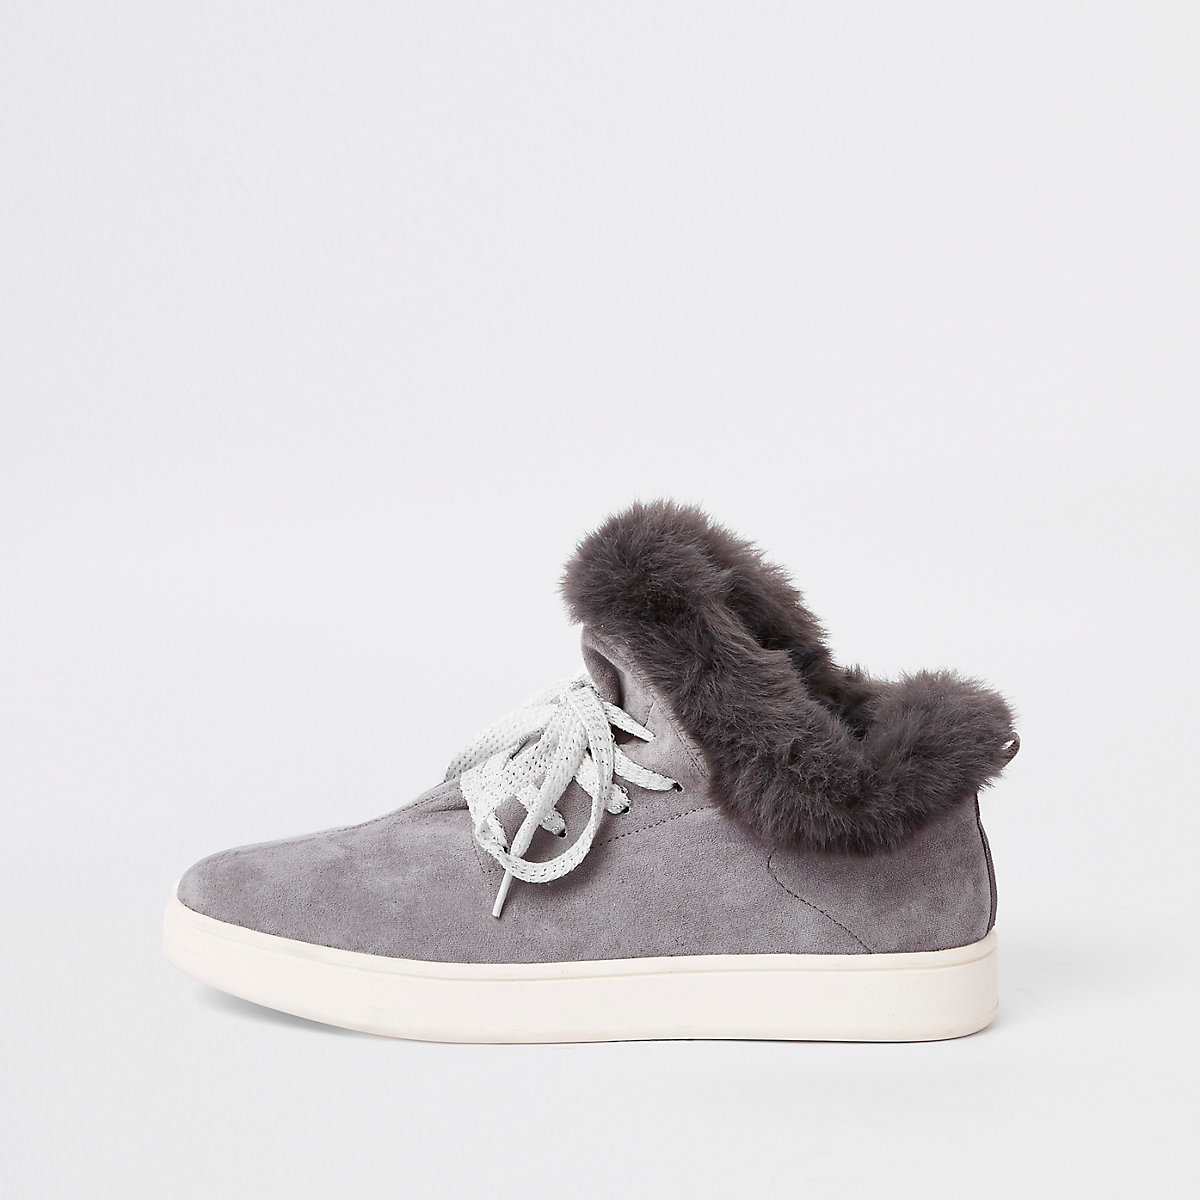 Light grey lace-up faux fur lined sneakers